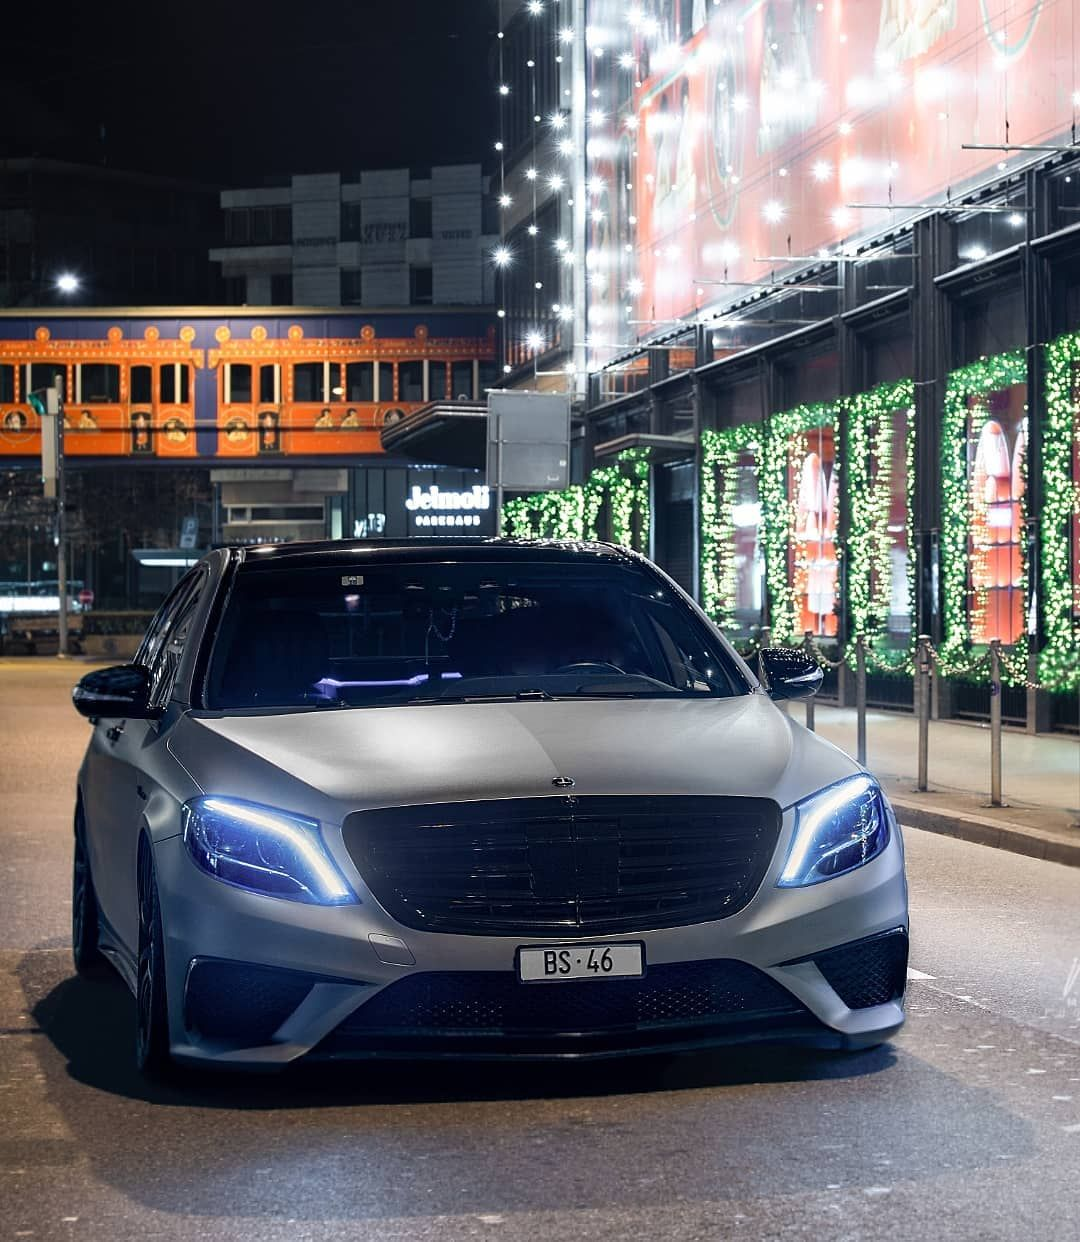 #amg #s63 #4matic #s65 #mansory #brabus #c63 #e63 #amggt